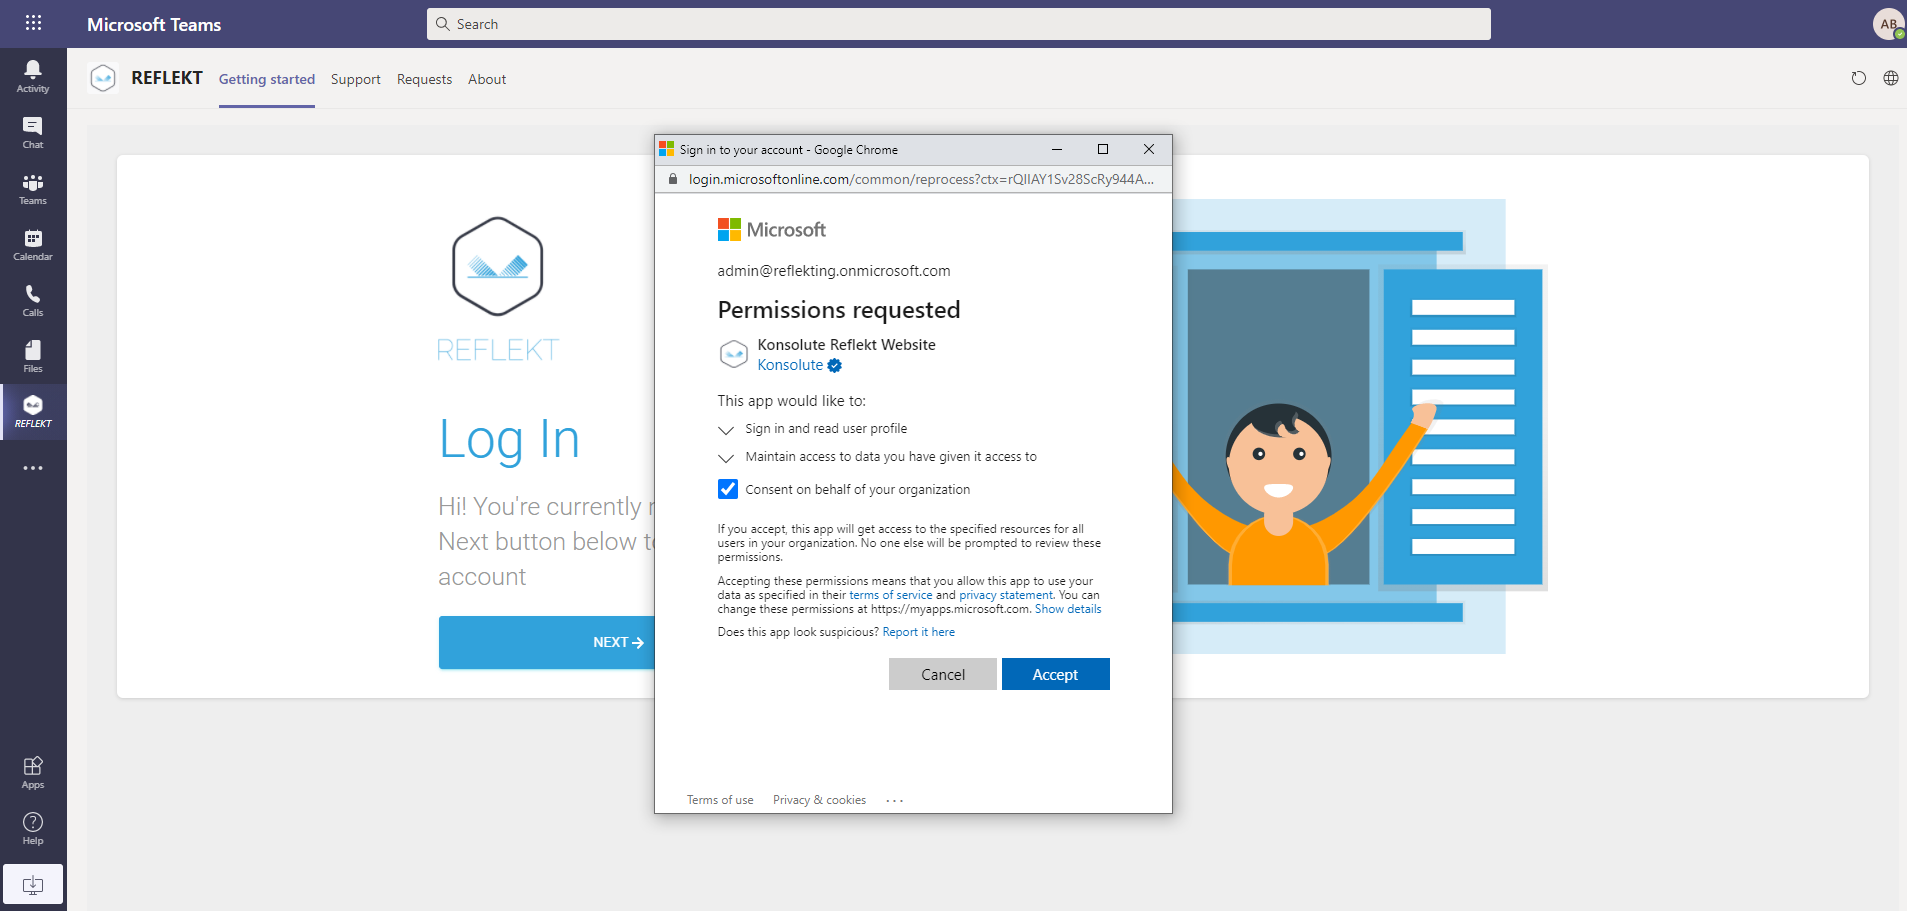 Reflekt Users Read Permissions Required